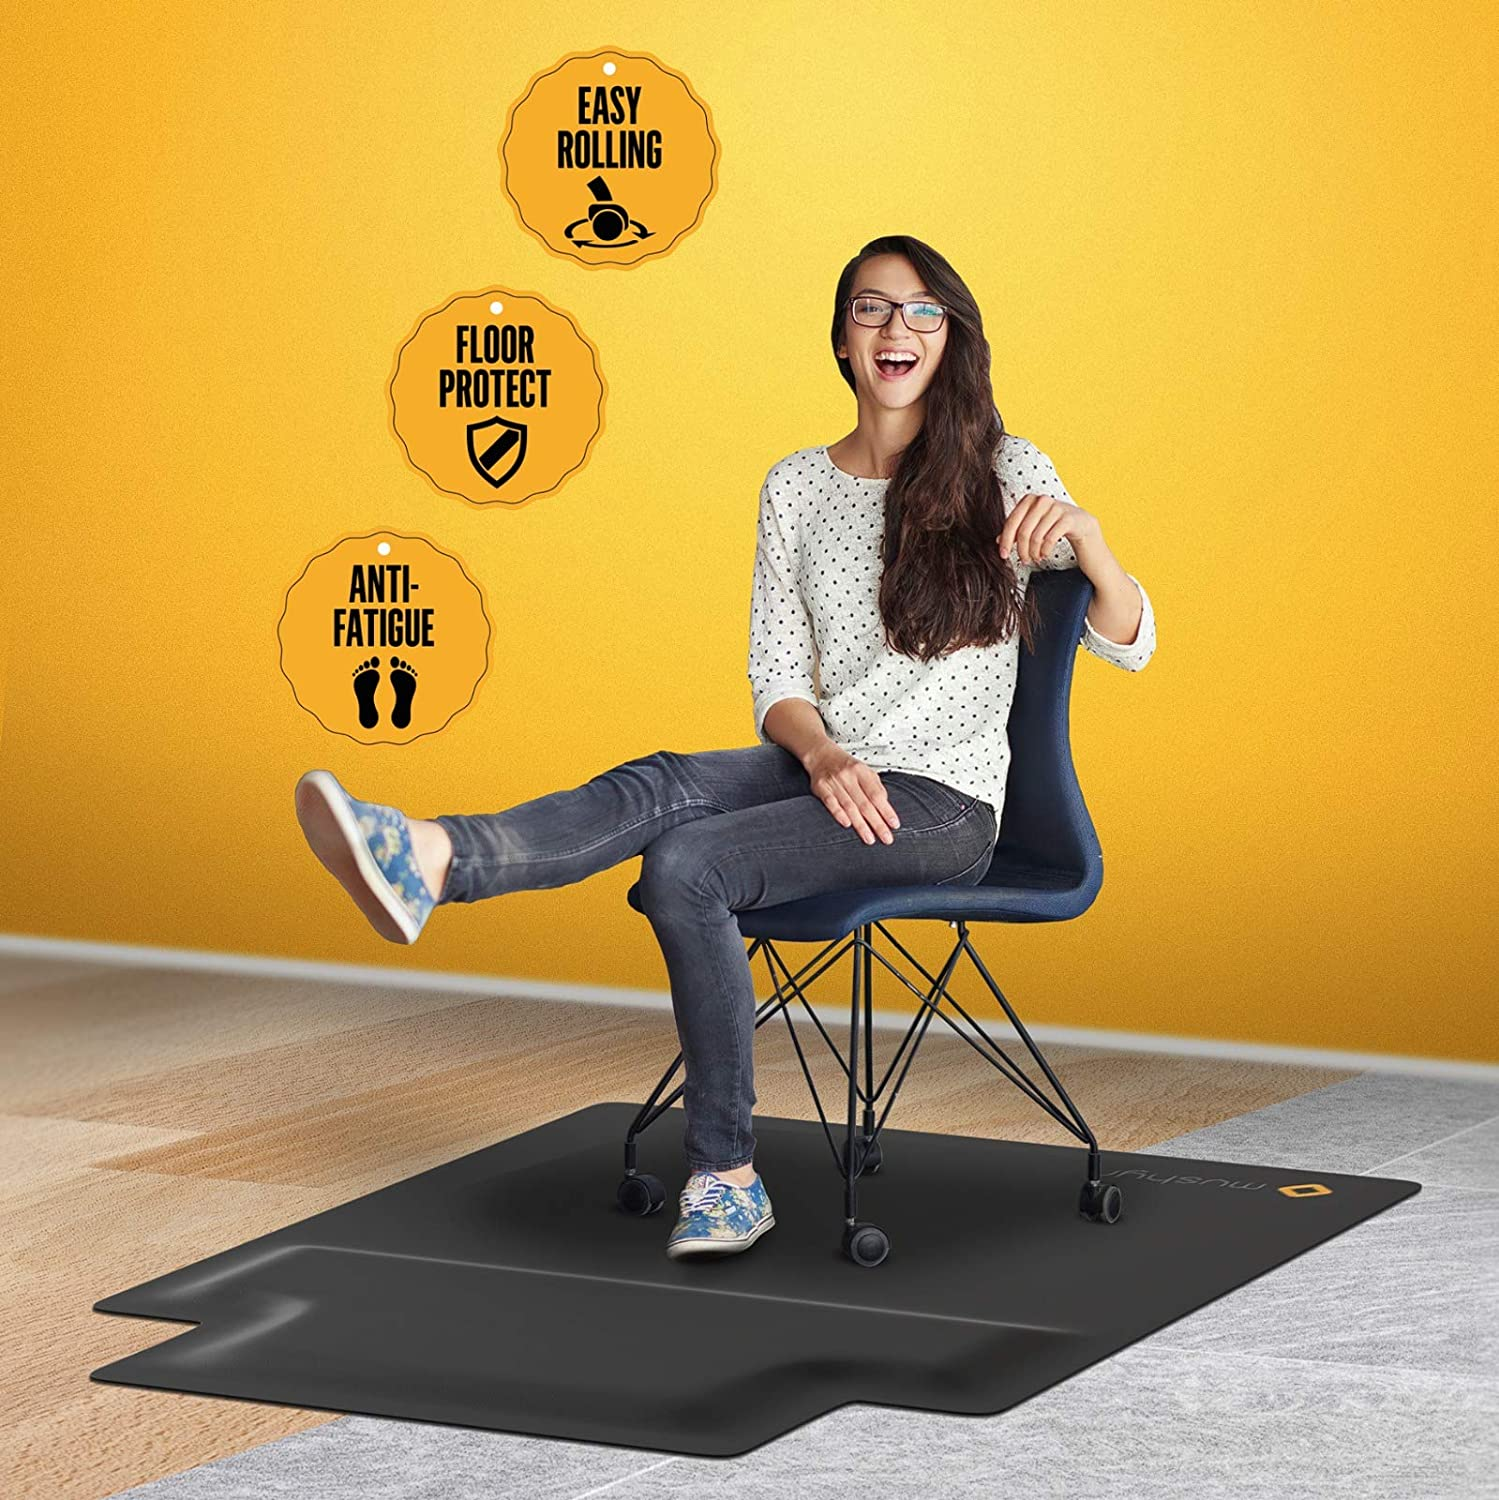 Office Chair Mat with Anti Fatigue Cushioned Foam - Chair Mat for Harwood Floor with Foot Rest Under Desk - 2 in 1 Chairmat Standing Desk Anti-Fatigue Comfort Mat: Kitchen & Dining